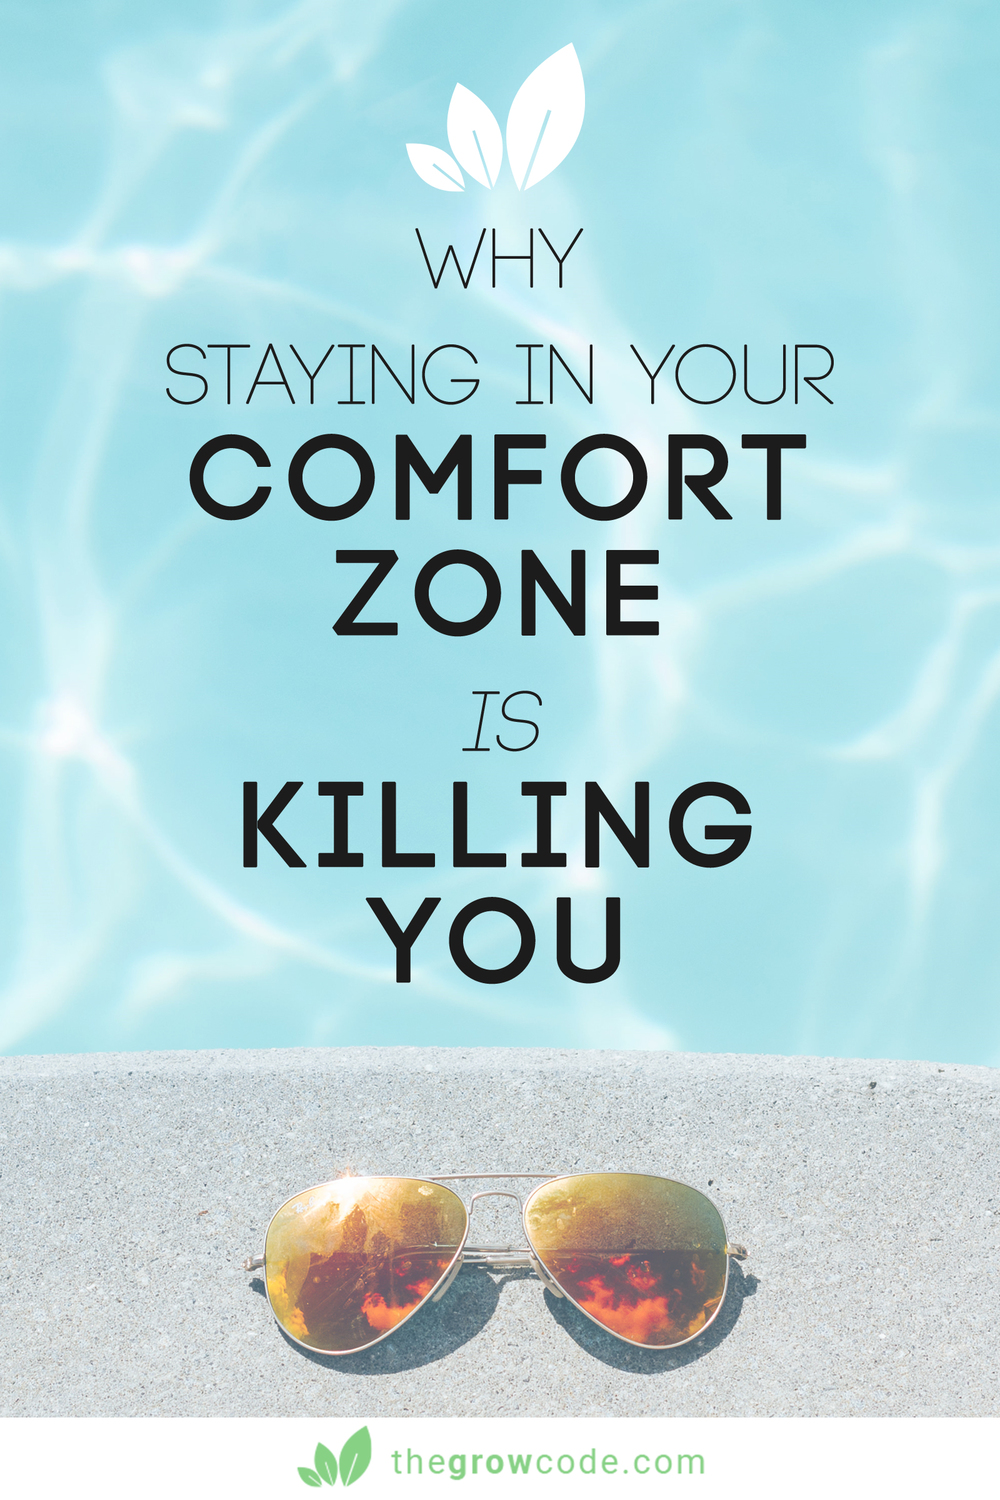 Why staying in your comfort zone is killing you